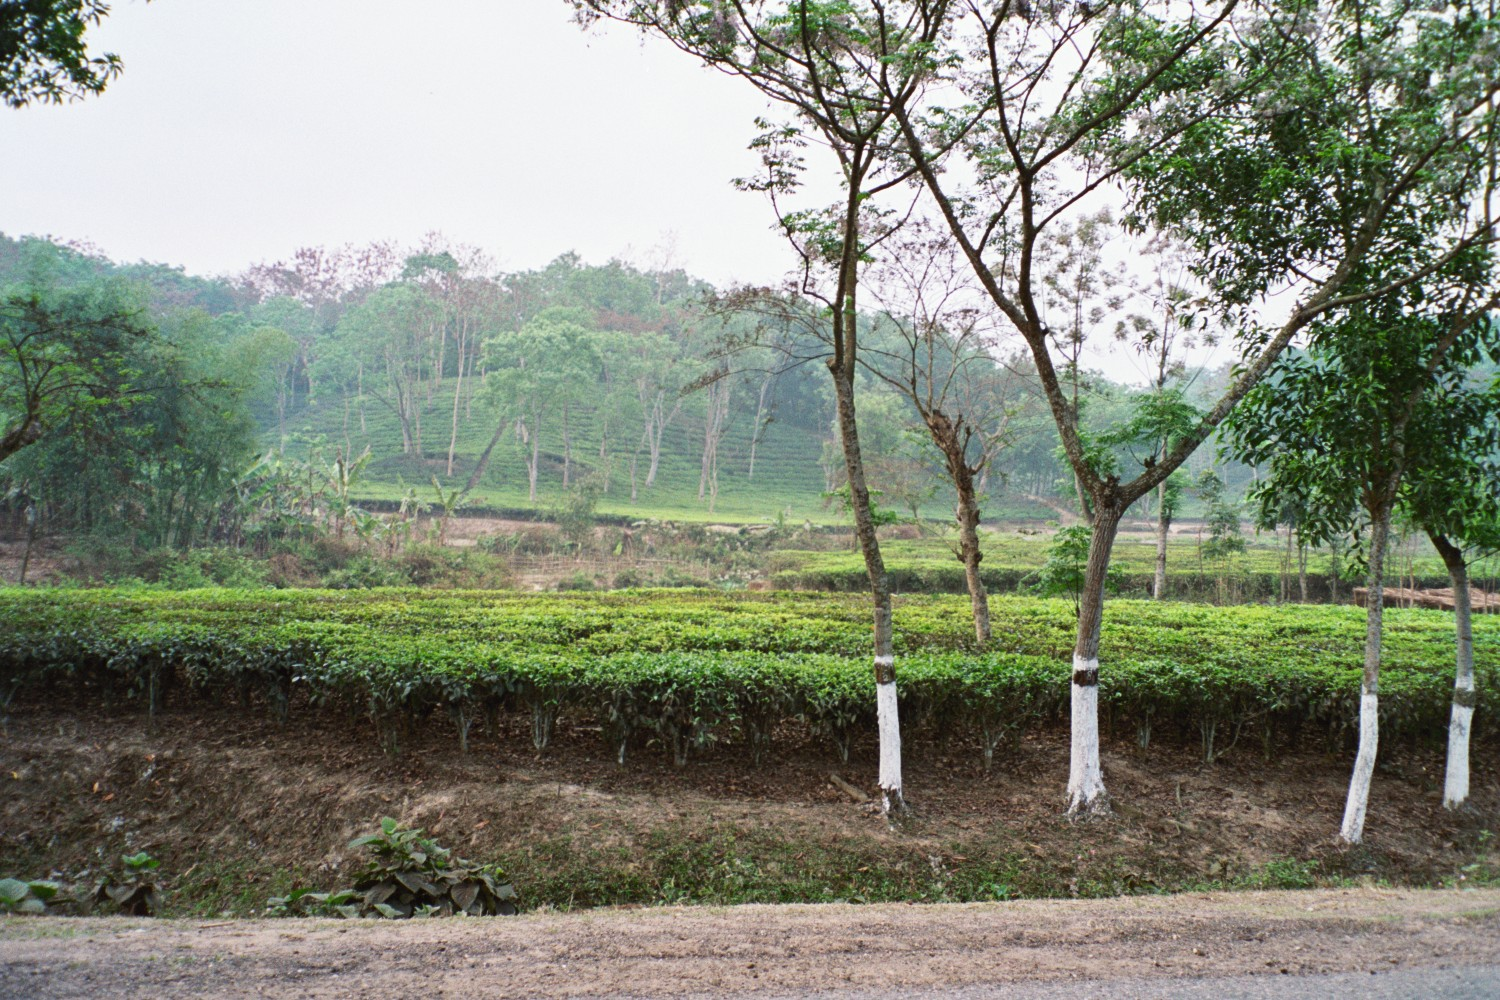 Future free clinic site in the remote tea- garden region of Bangladesh